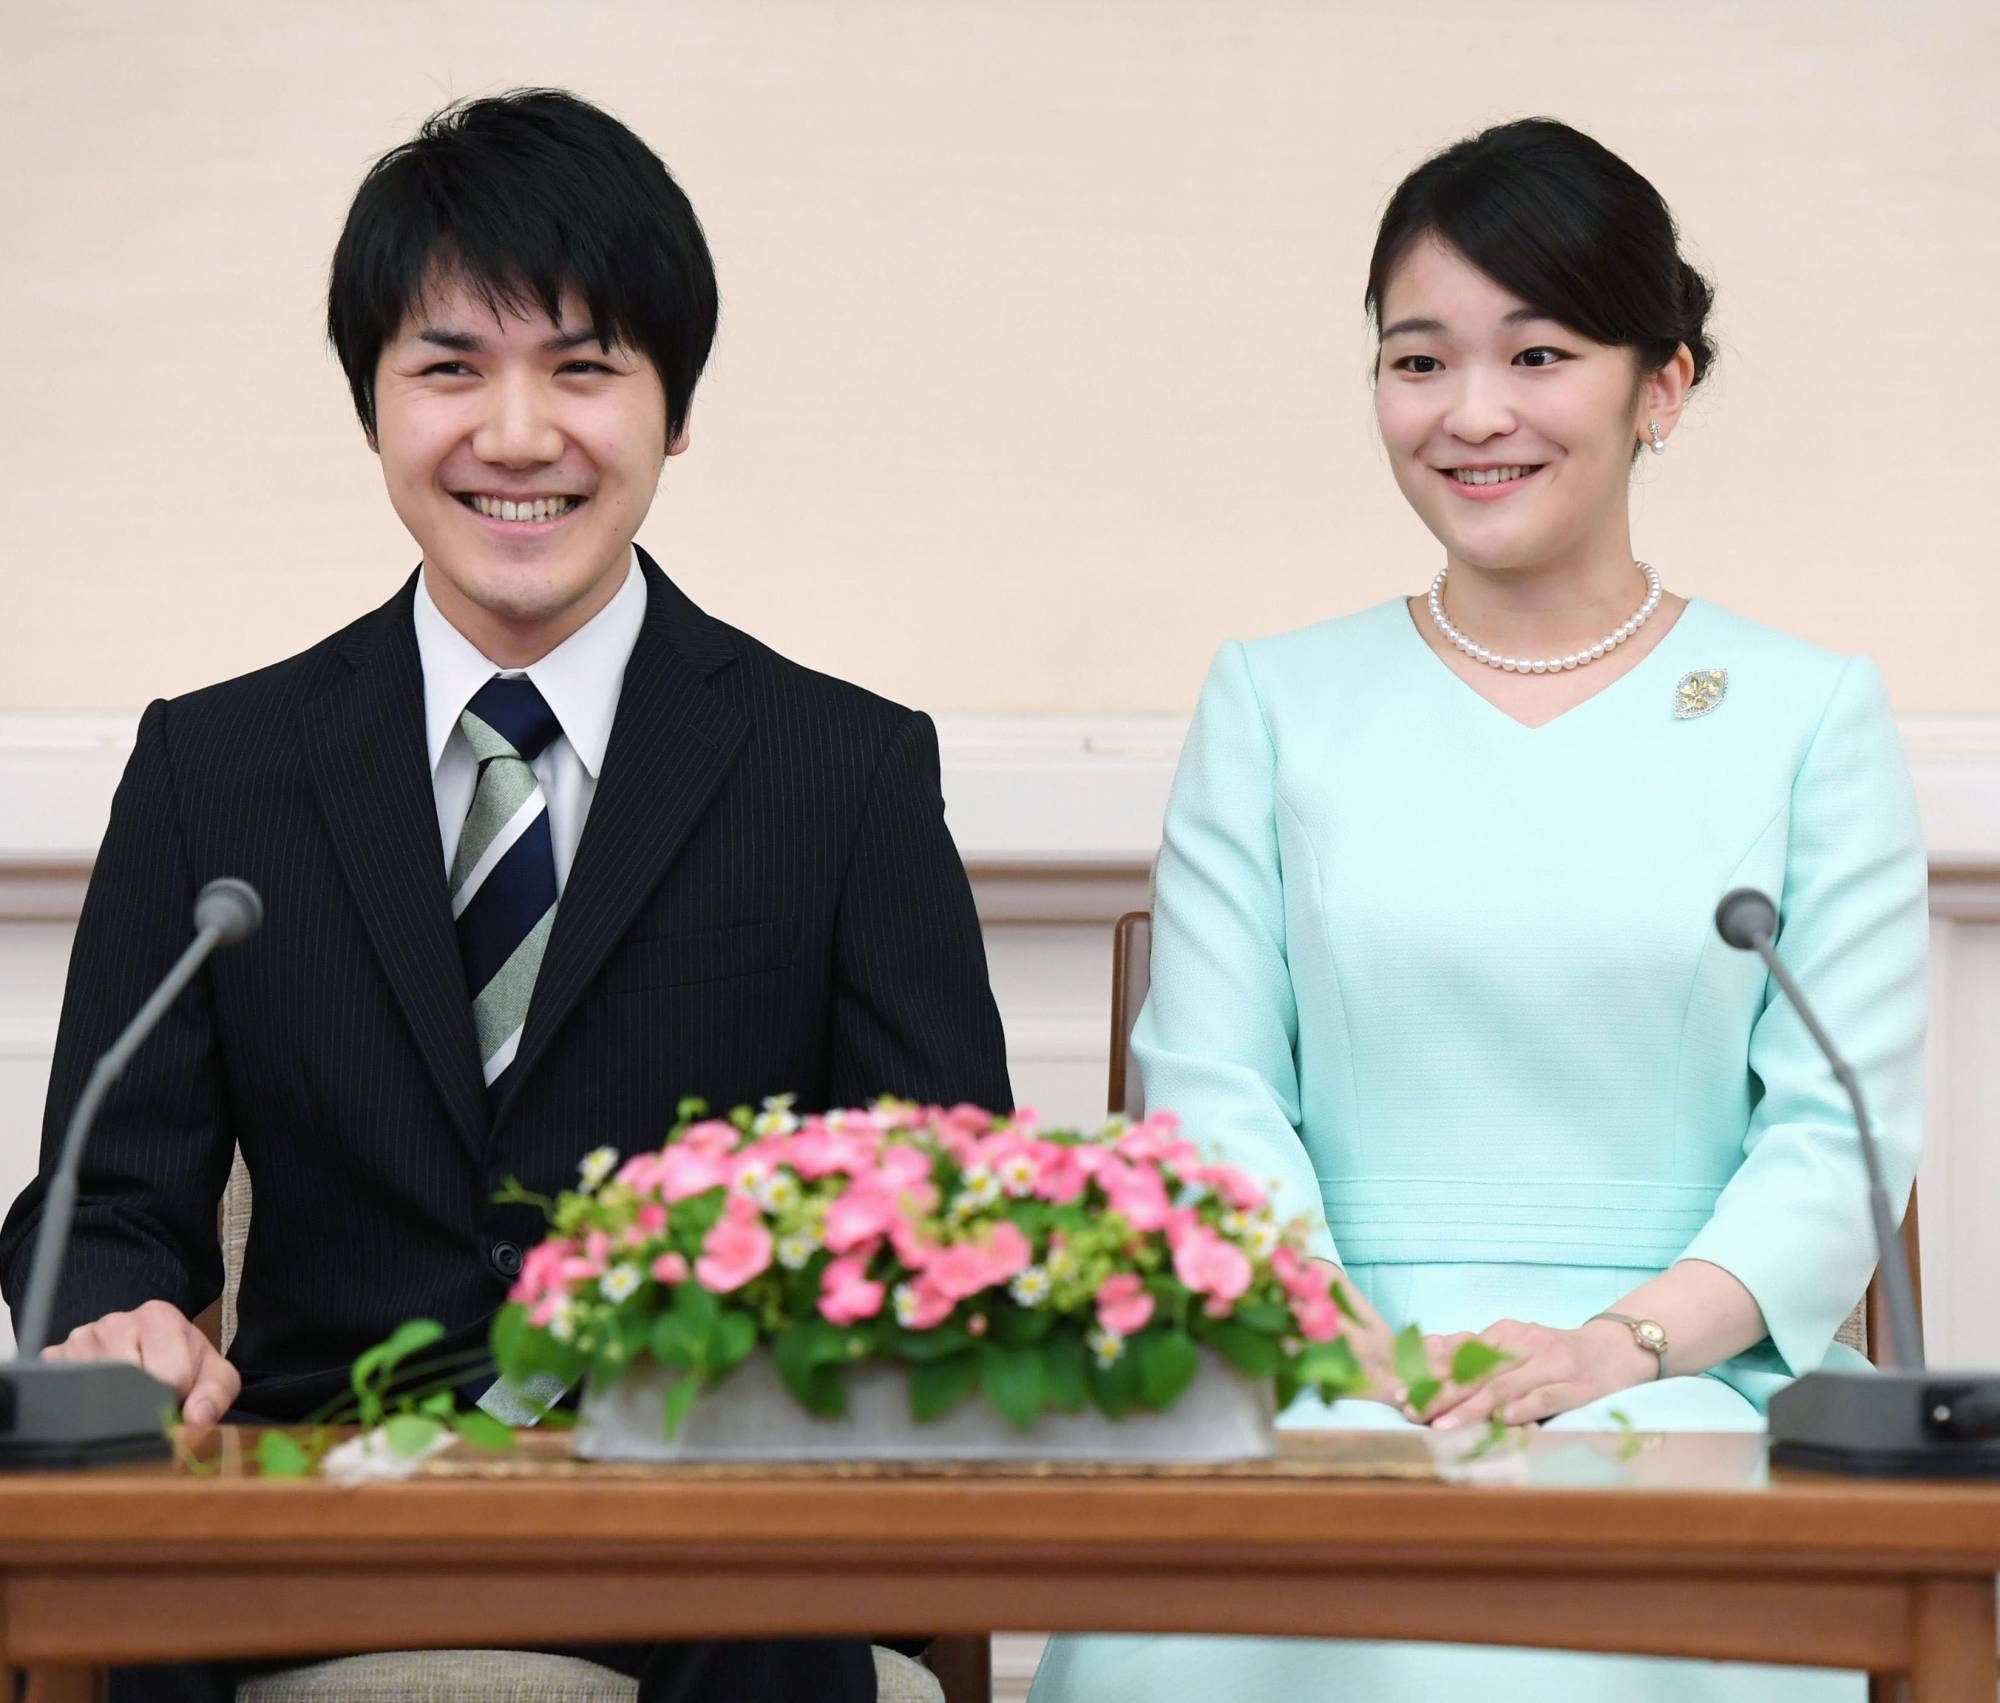 Japan crown prince 'approves' of daughter's plan to marry but says financial issue must be resolved | The Japan Times